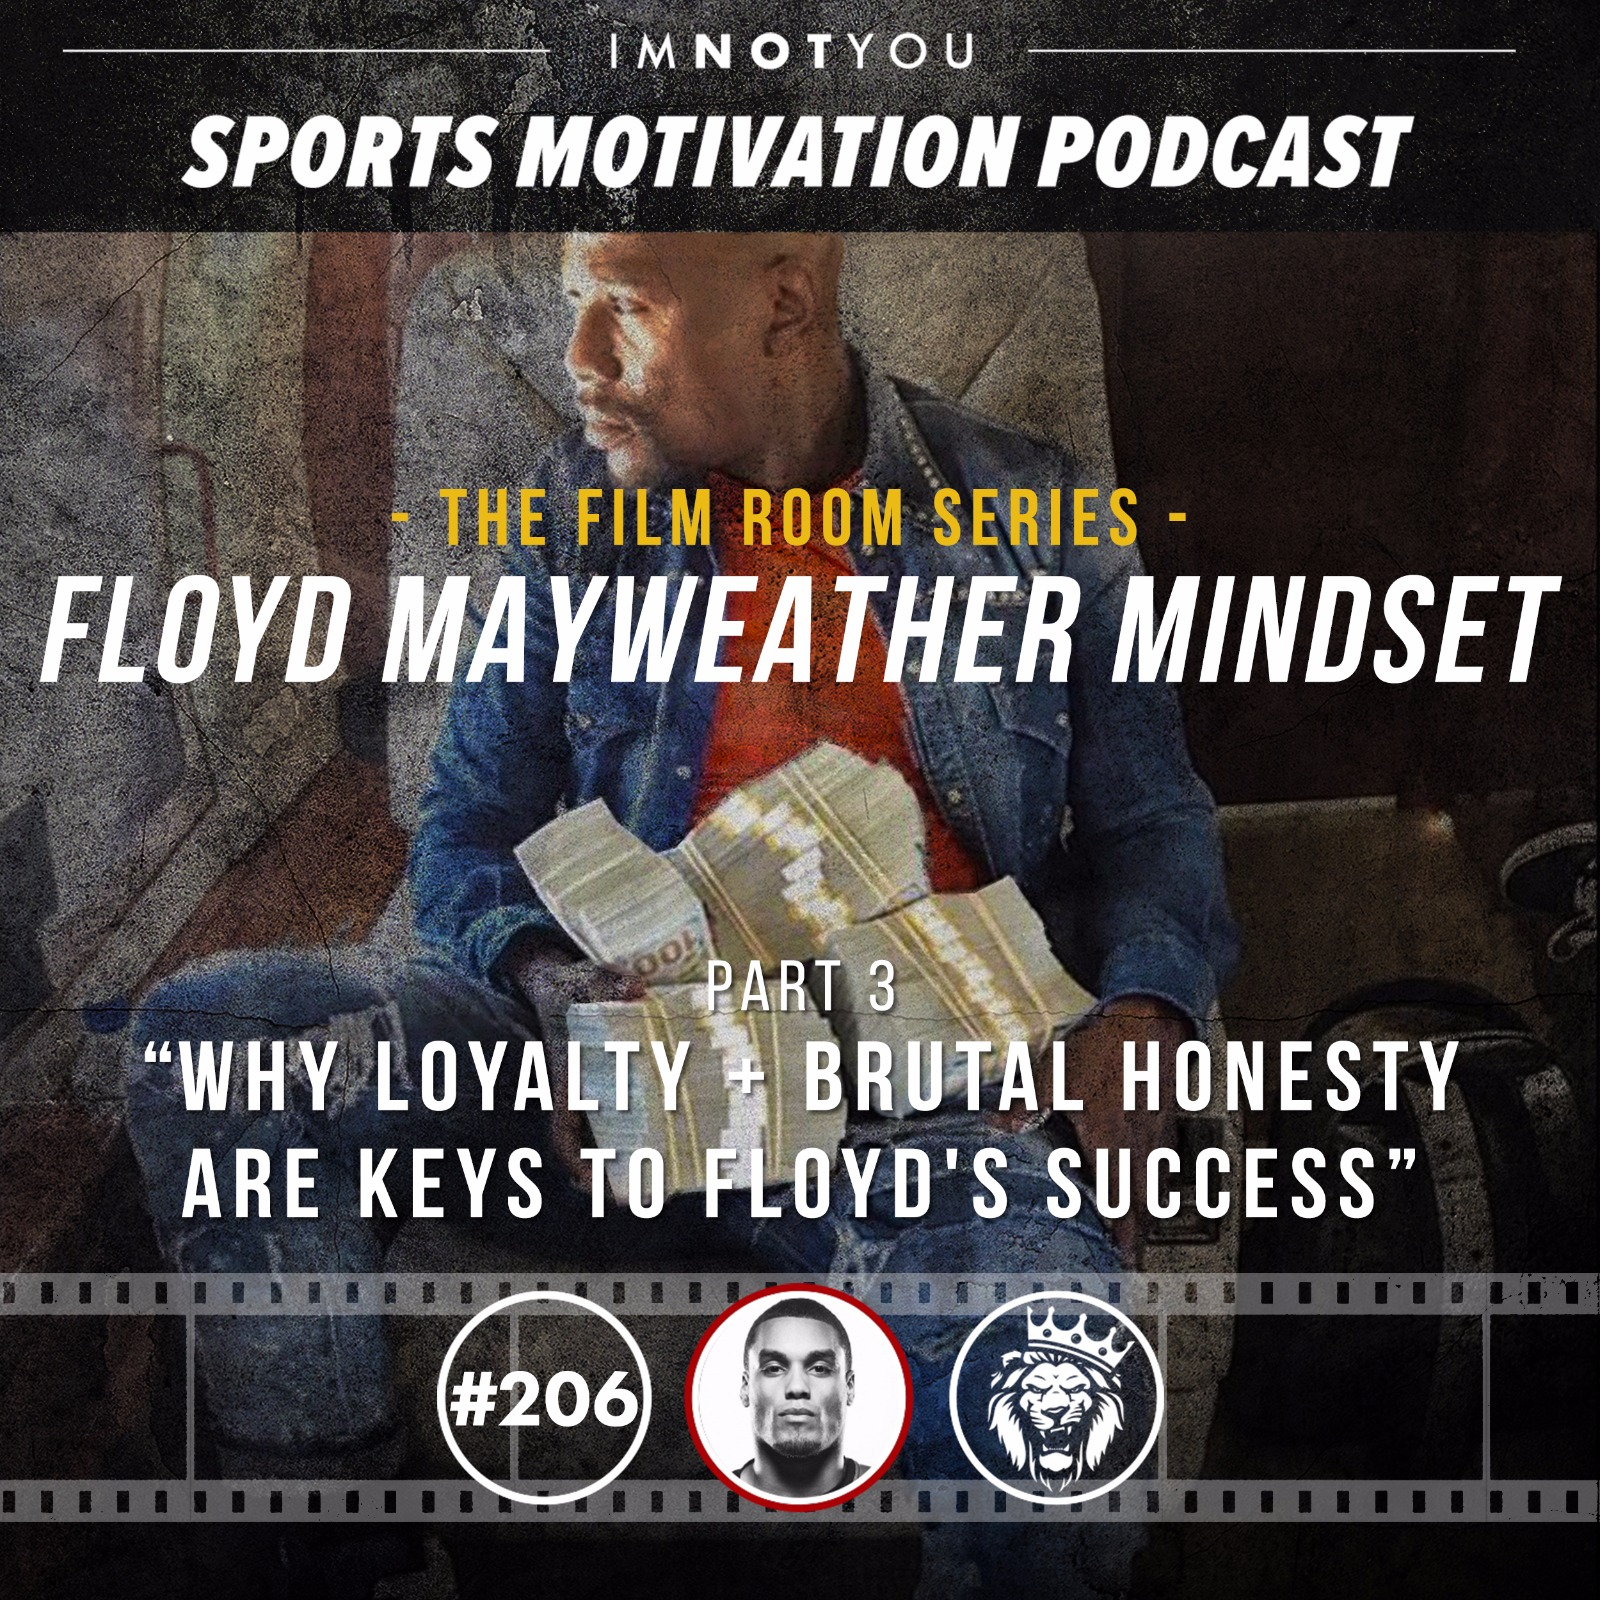 206: The Film Room: Floyd Mayweather Mindset, Pt. 3: Why Loyalty + Brutal Honesty are keys to Floyd's Success